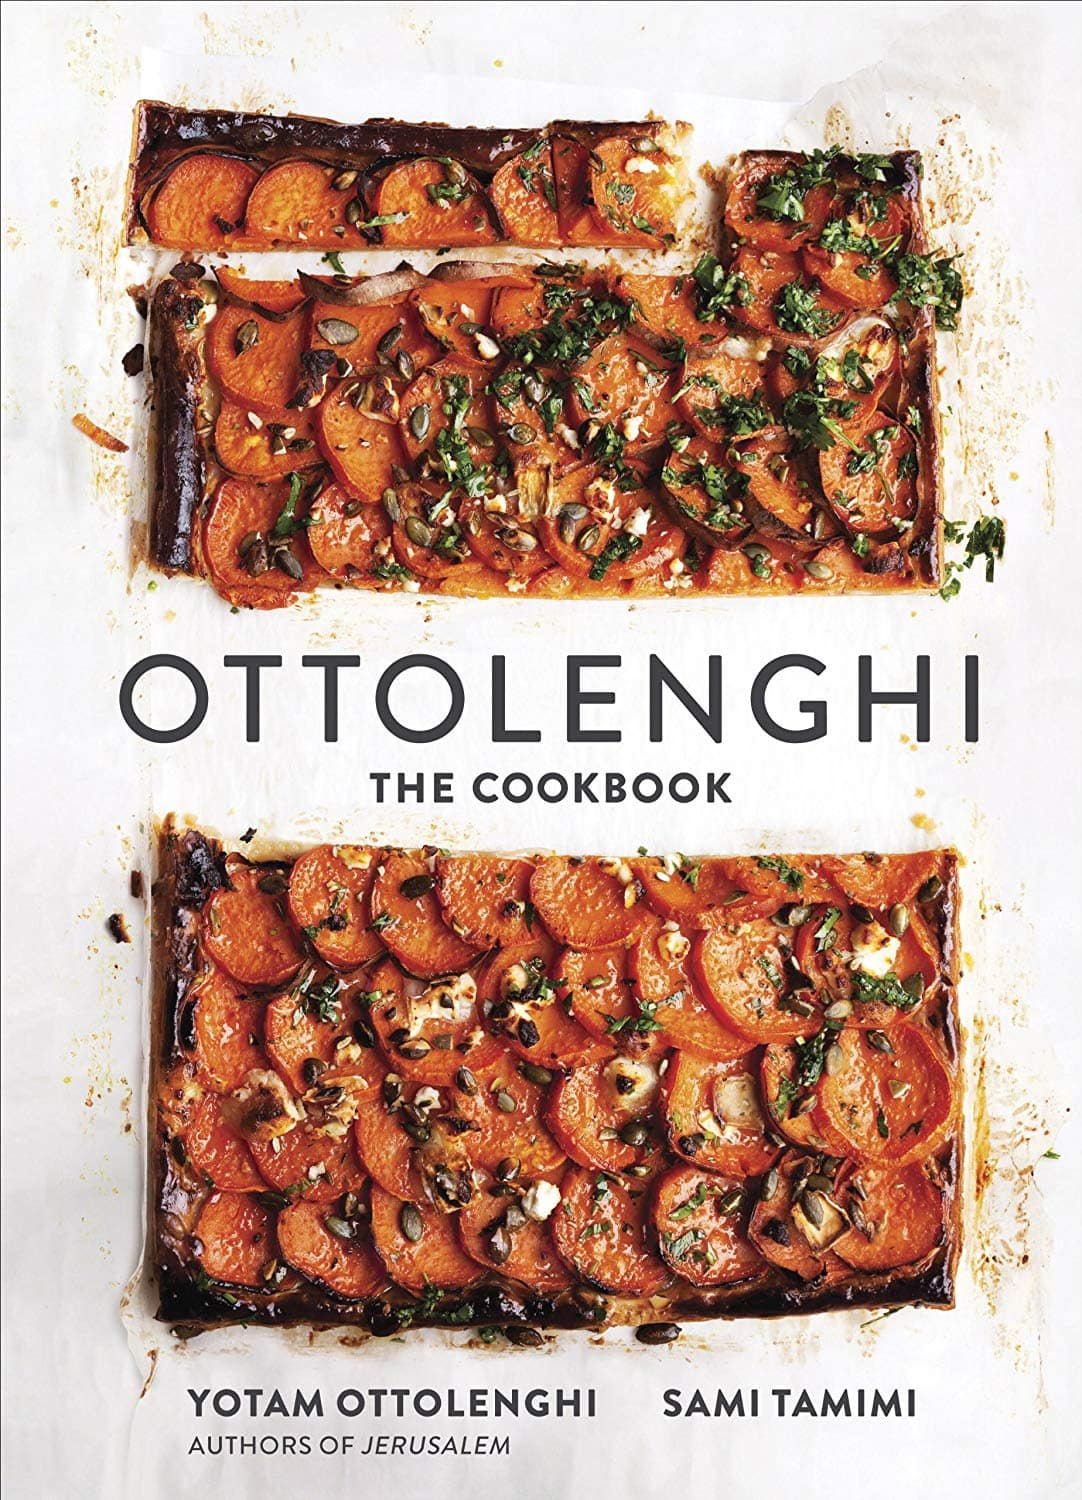 "Ottolenghi: The Cookbook Kindle Edition  $2.99 (+ $2.24 credit towards next ""Great on Kindle"" book)"